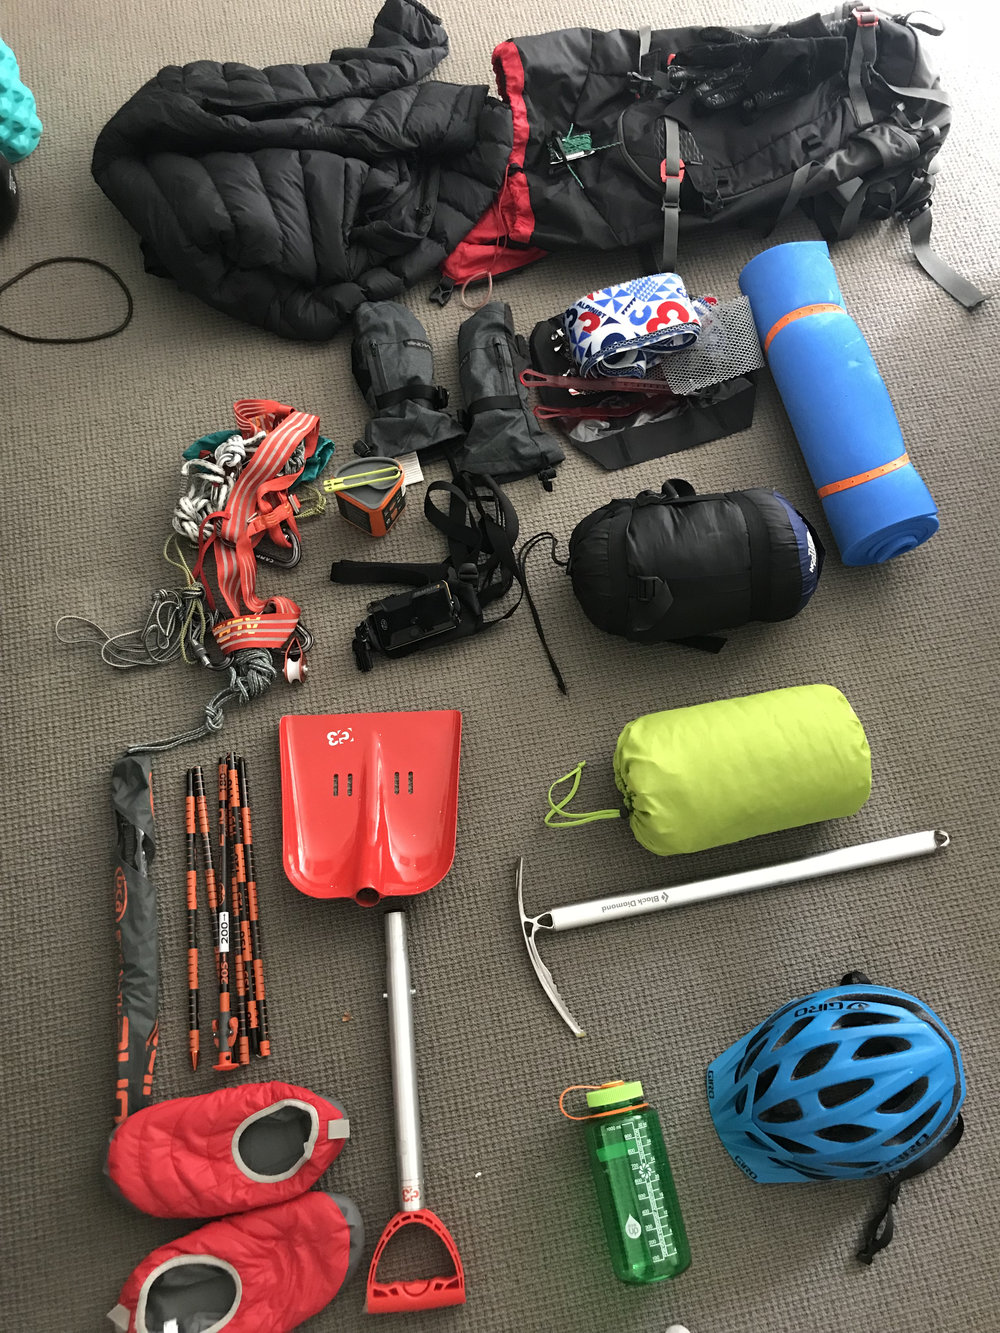 Some of the gear. Not picture: skis, poles, boots, additional warm weather gear.